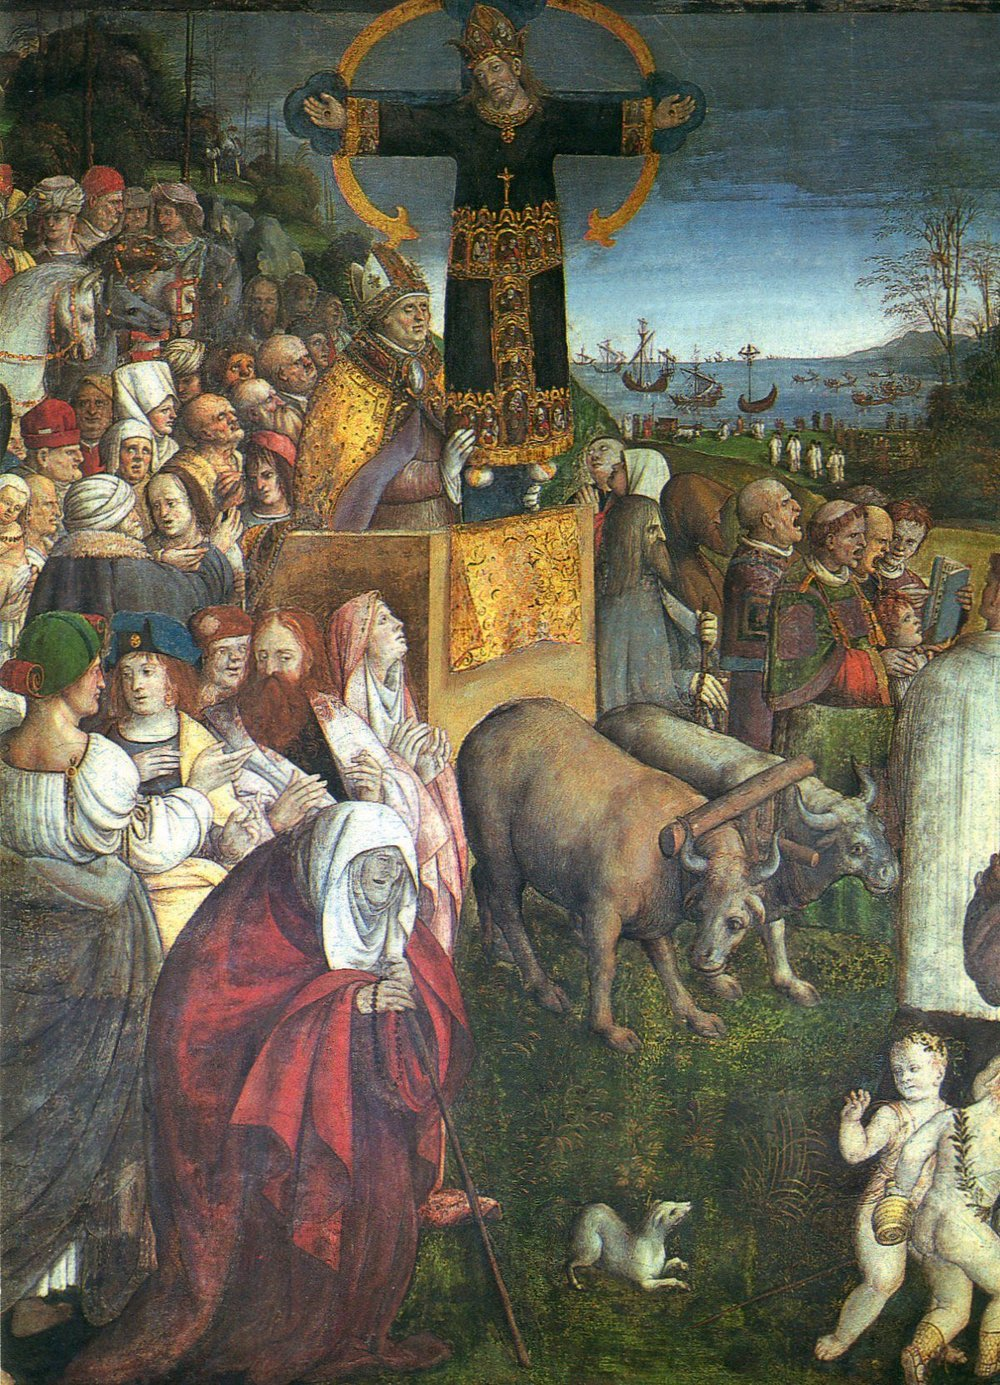 This painting, in the church of San Frediano, depicts the arrival of the Volto Santo, in an ox drawn cart, to Lucca.